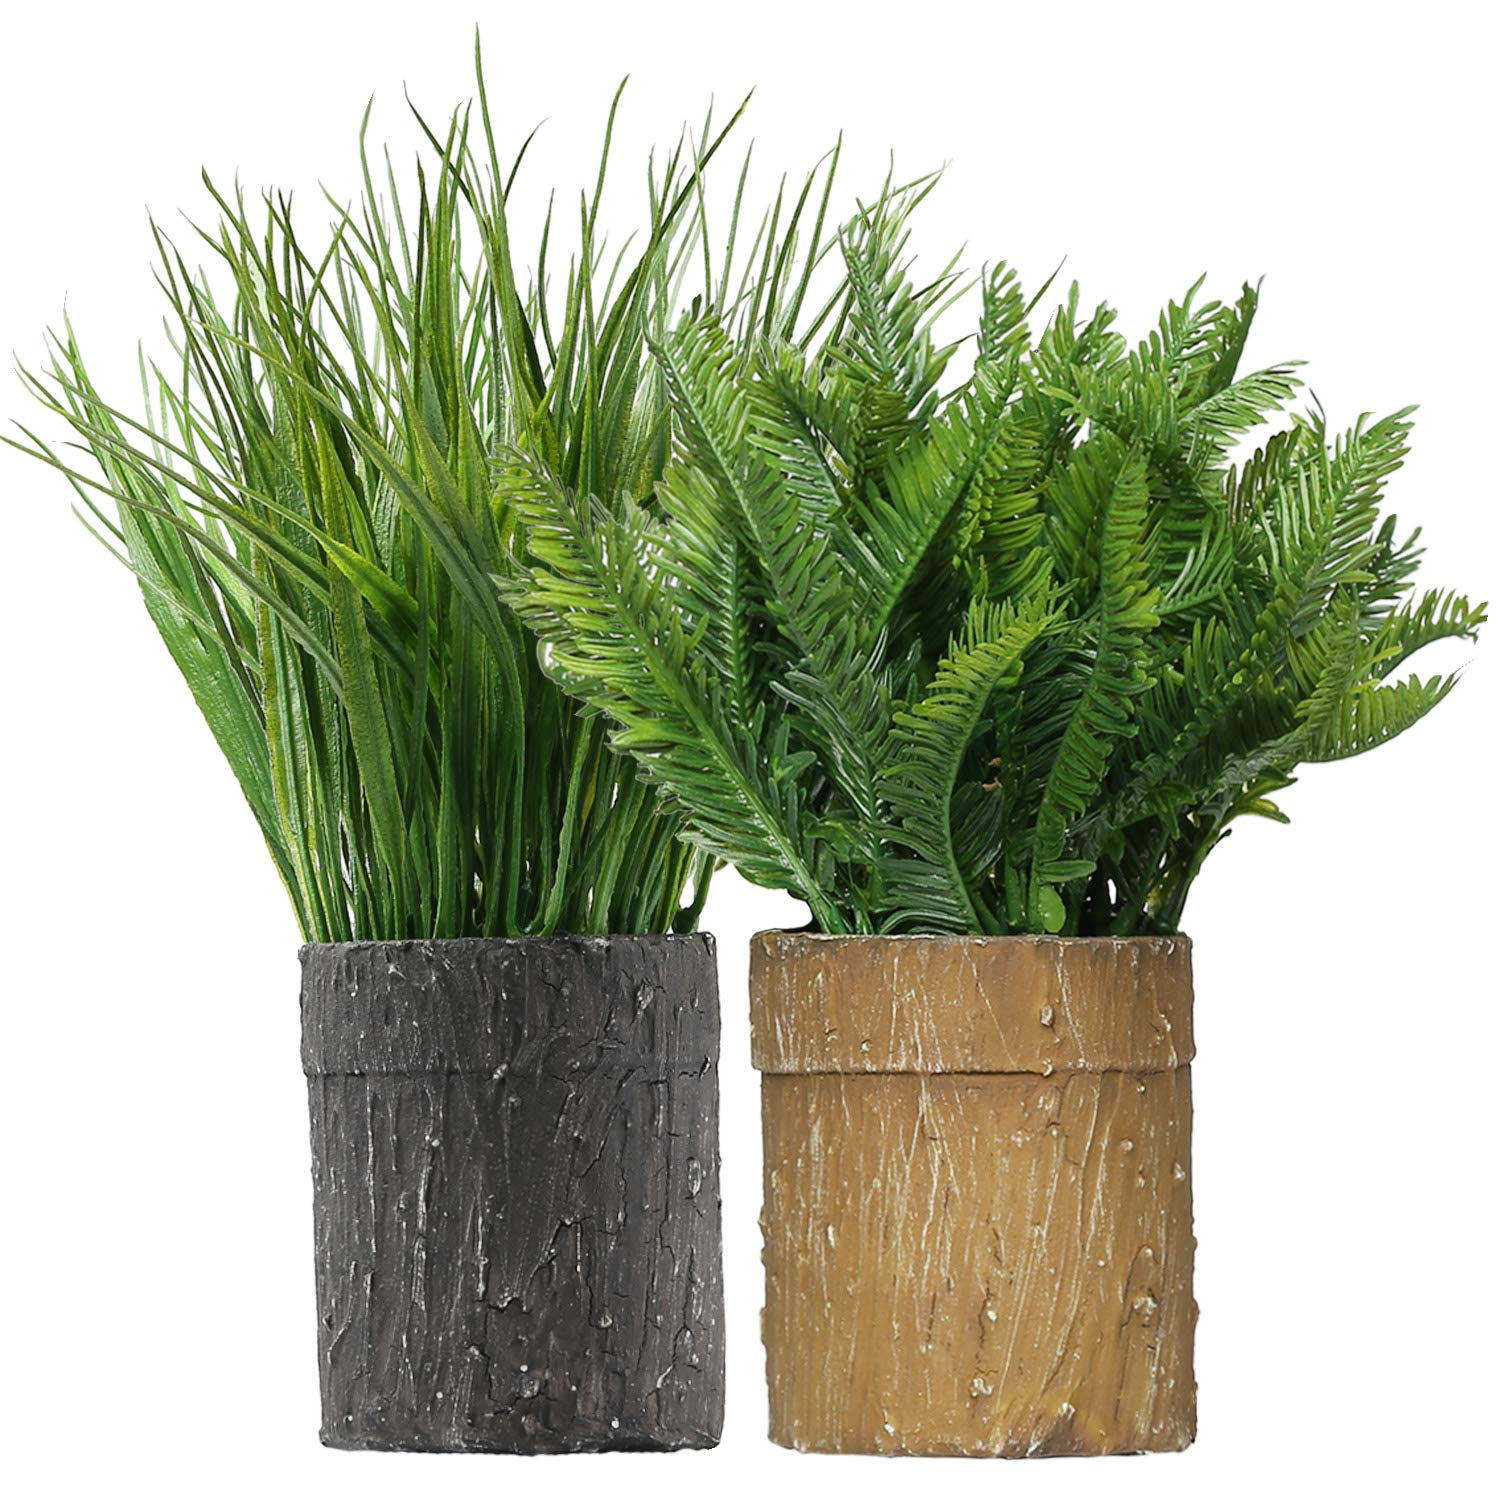 """Artificial Plants Fern Fake Shrubs Bushe 11"""" Height in Handmade Textured Paper Pot Greenery Grass Indoor Home and Bathroom Decor 2 Packs"""